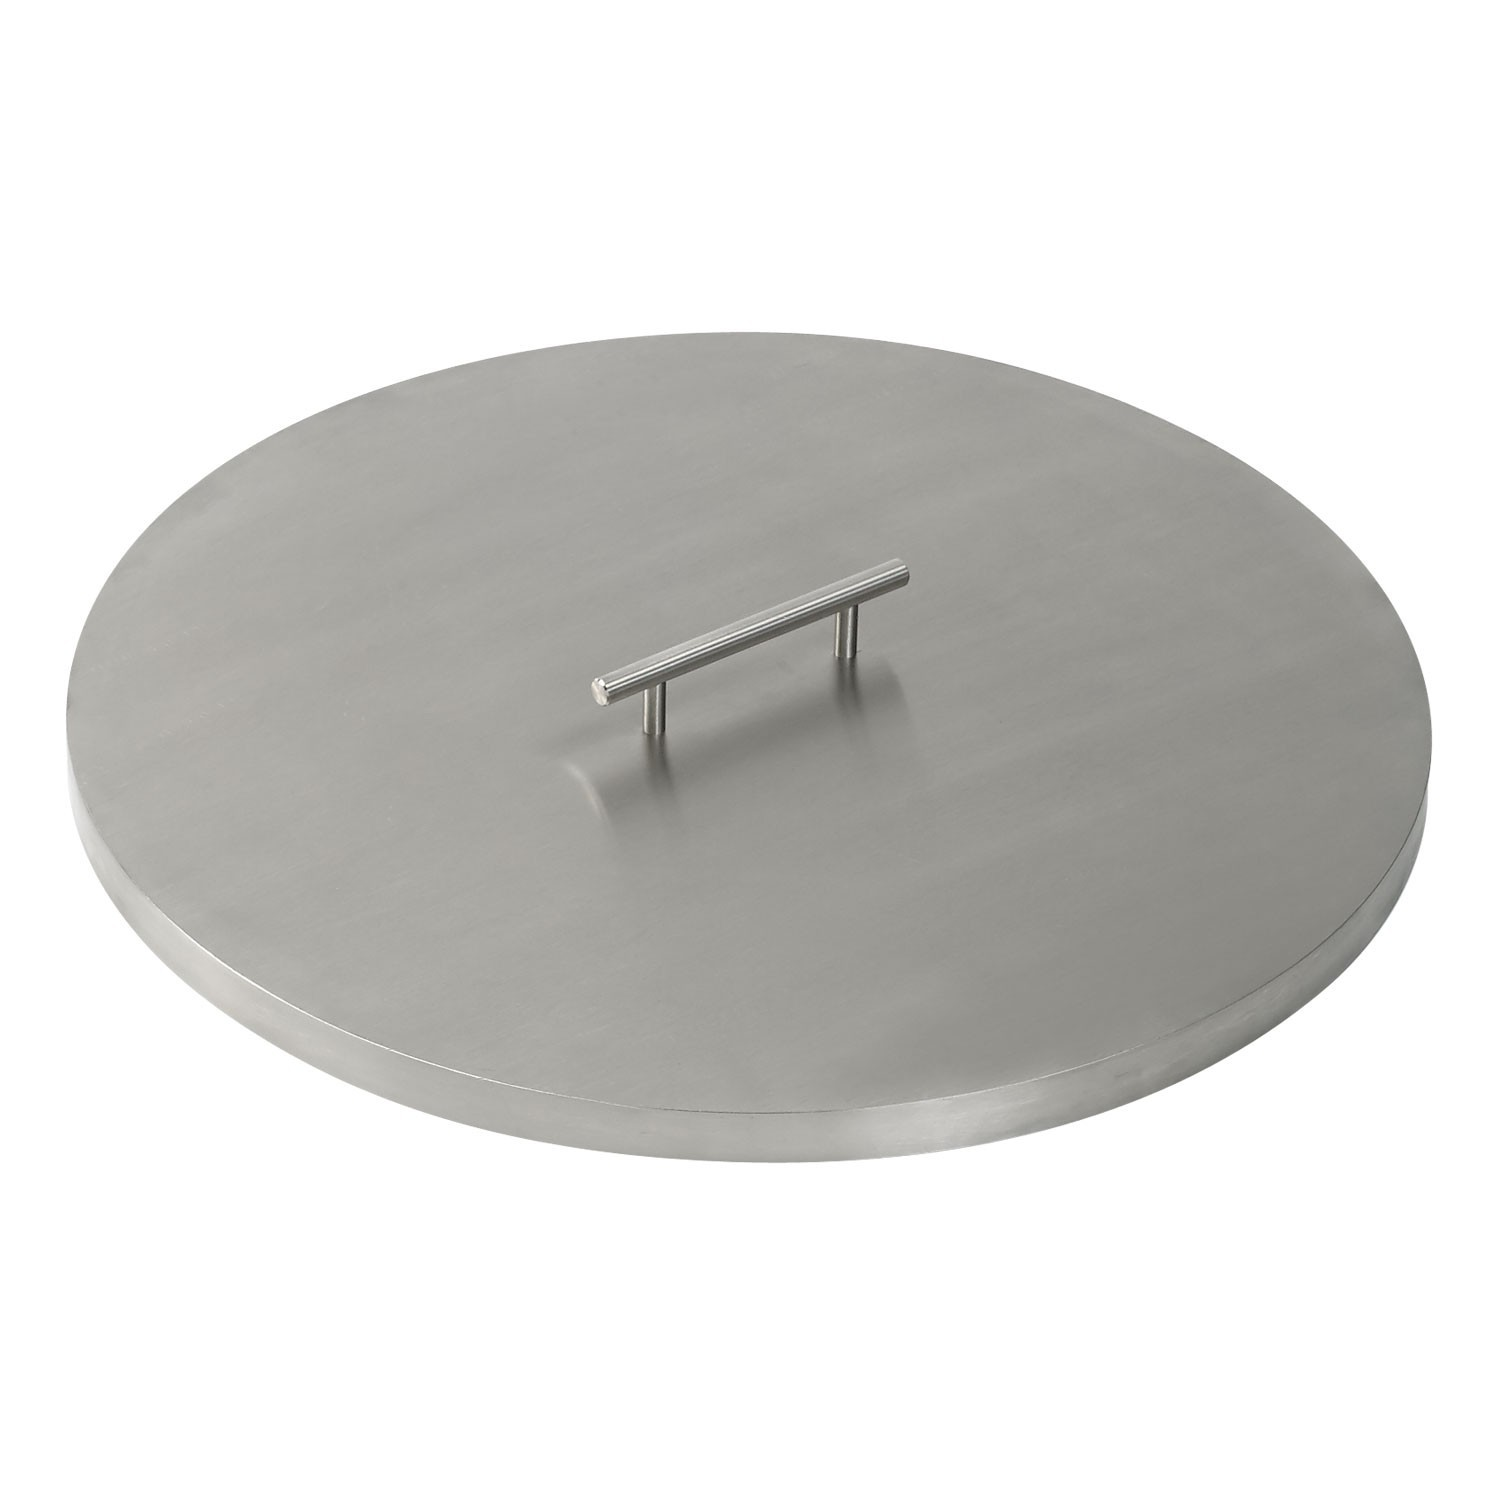 Round Stainless Steel Fire Pit Cover Lid